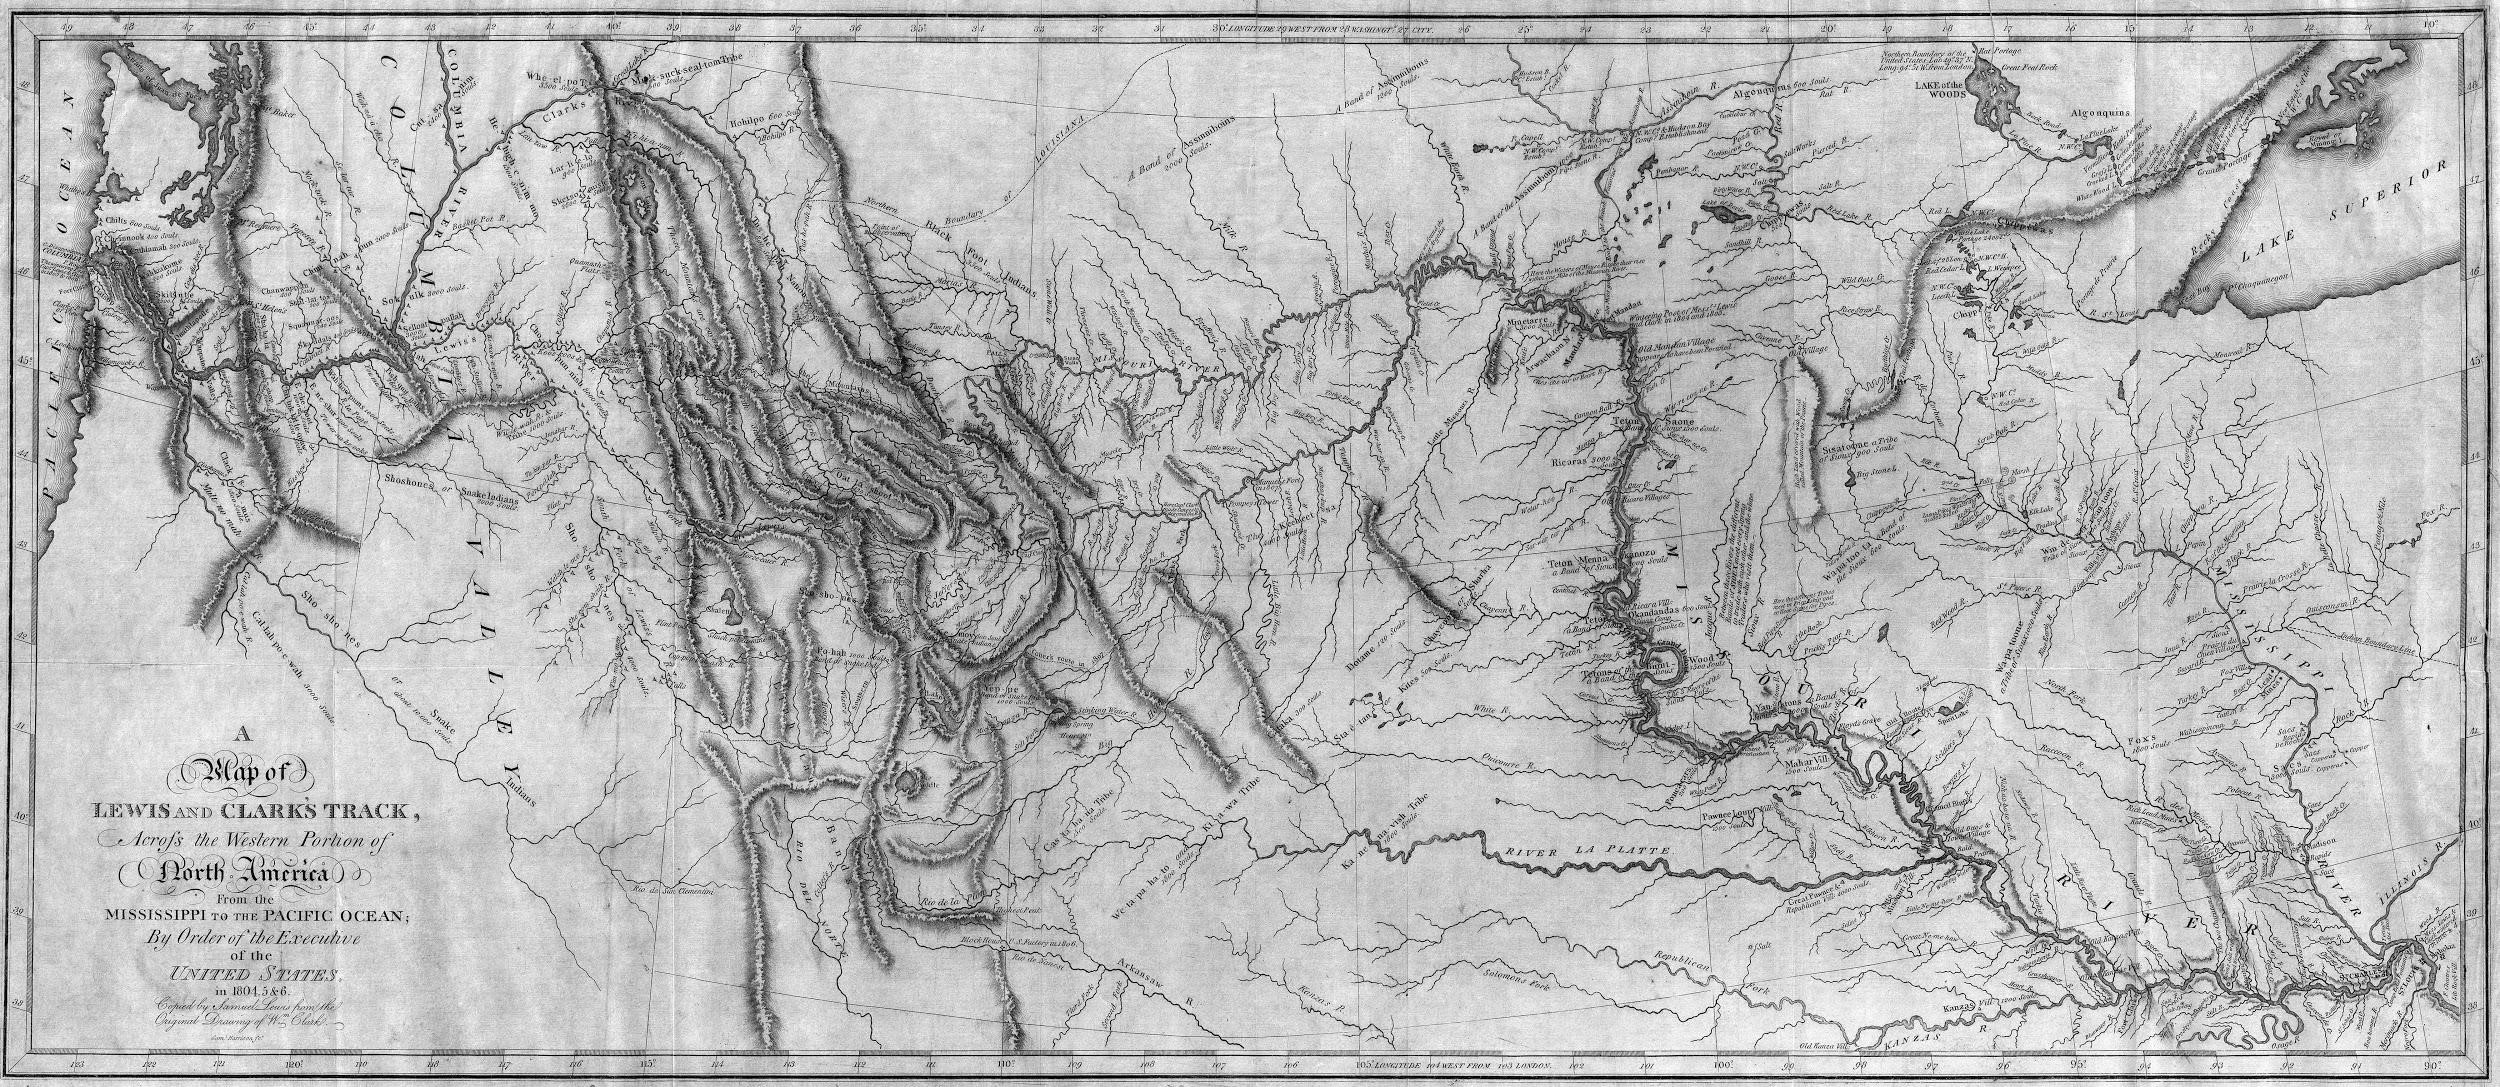 This 1814 map of Lewis and Clark's path across North America from the Missouri River to the Pacific Ocean was based on maps and notes made by William Clark. The expedition added greatly to American knowledge of the territory that lay west of the Mississippi River. Of particular note, this map accurately located the source of the Missouri and Columbia rivers, as well as denoted the location of the Rocky Mountains.